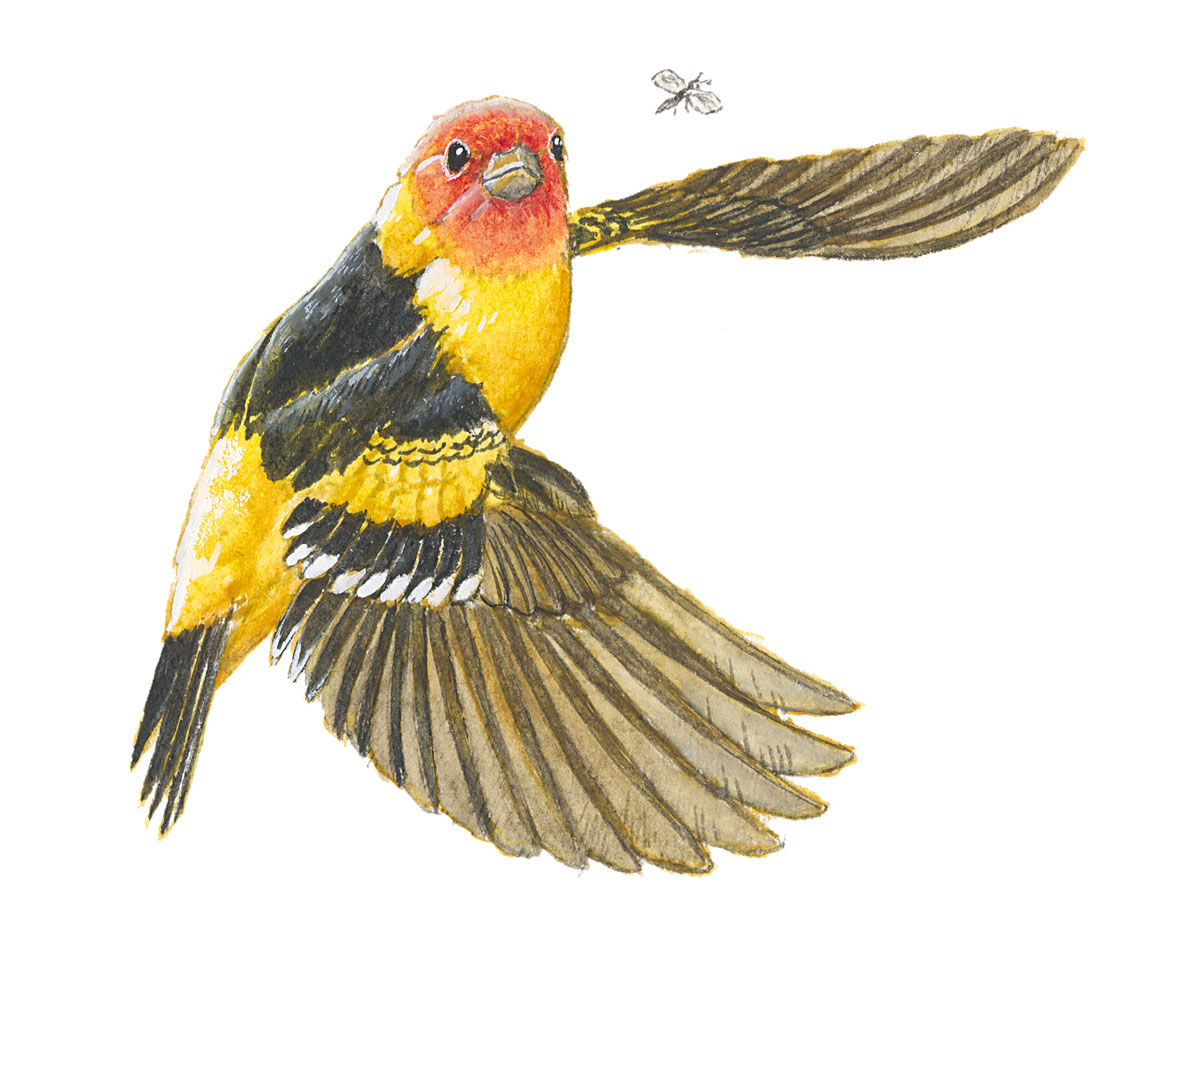 Painting: a bird turns mid flap to look at an insect.